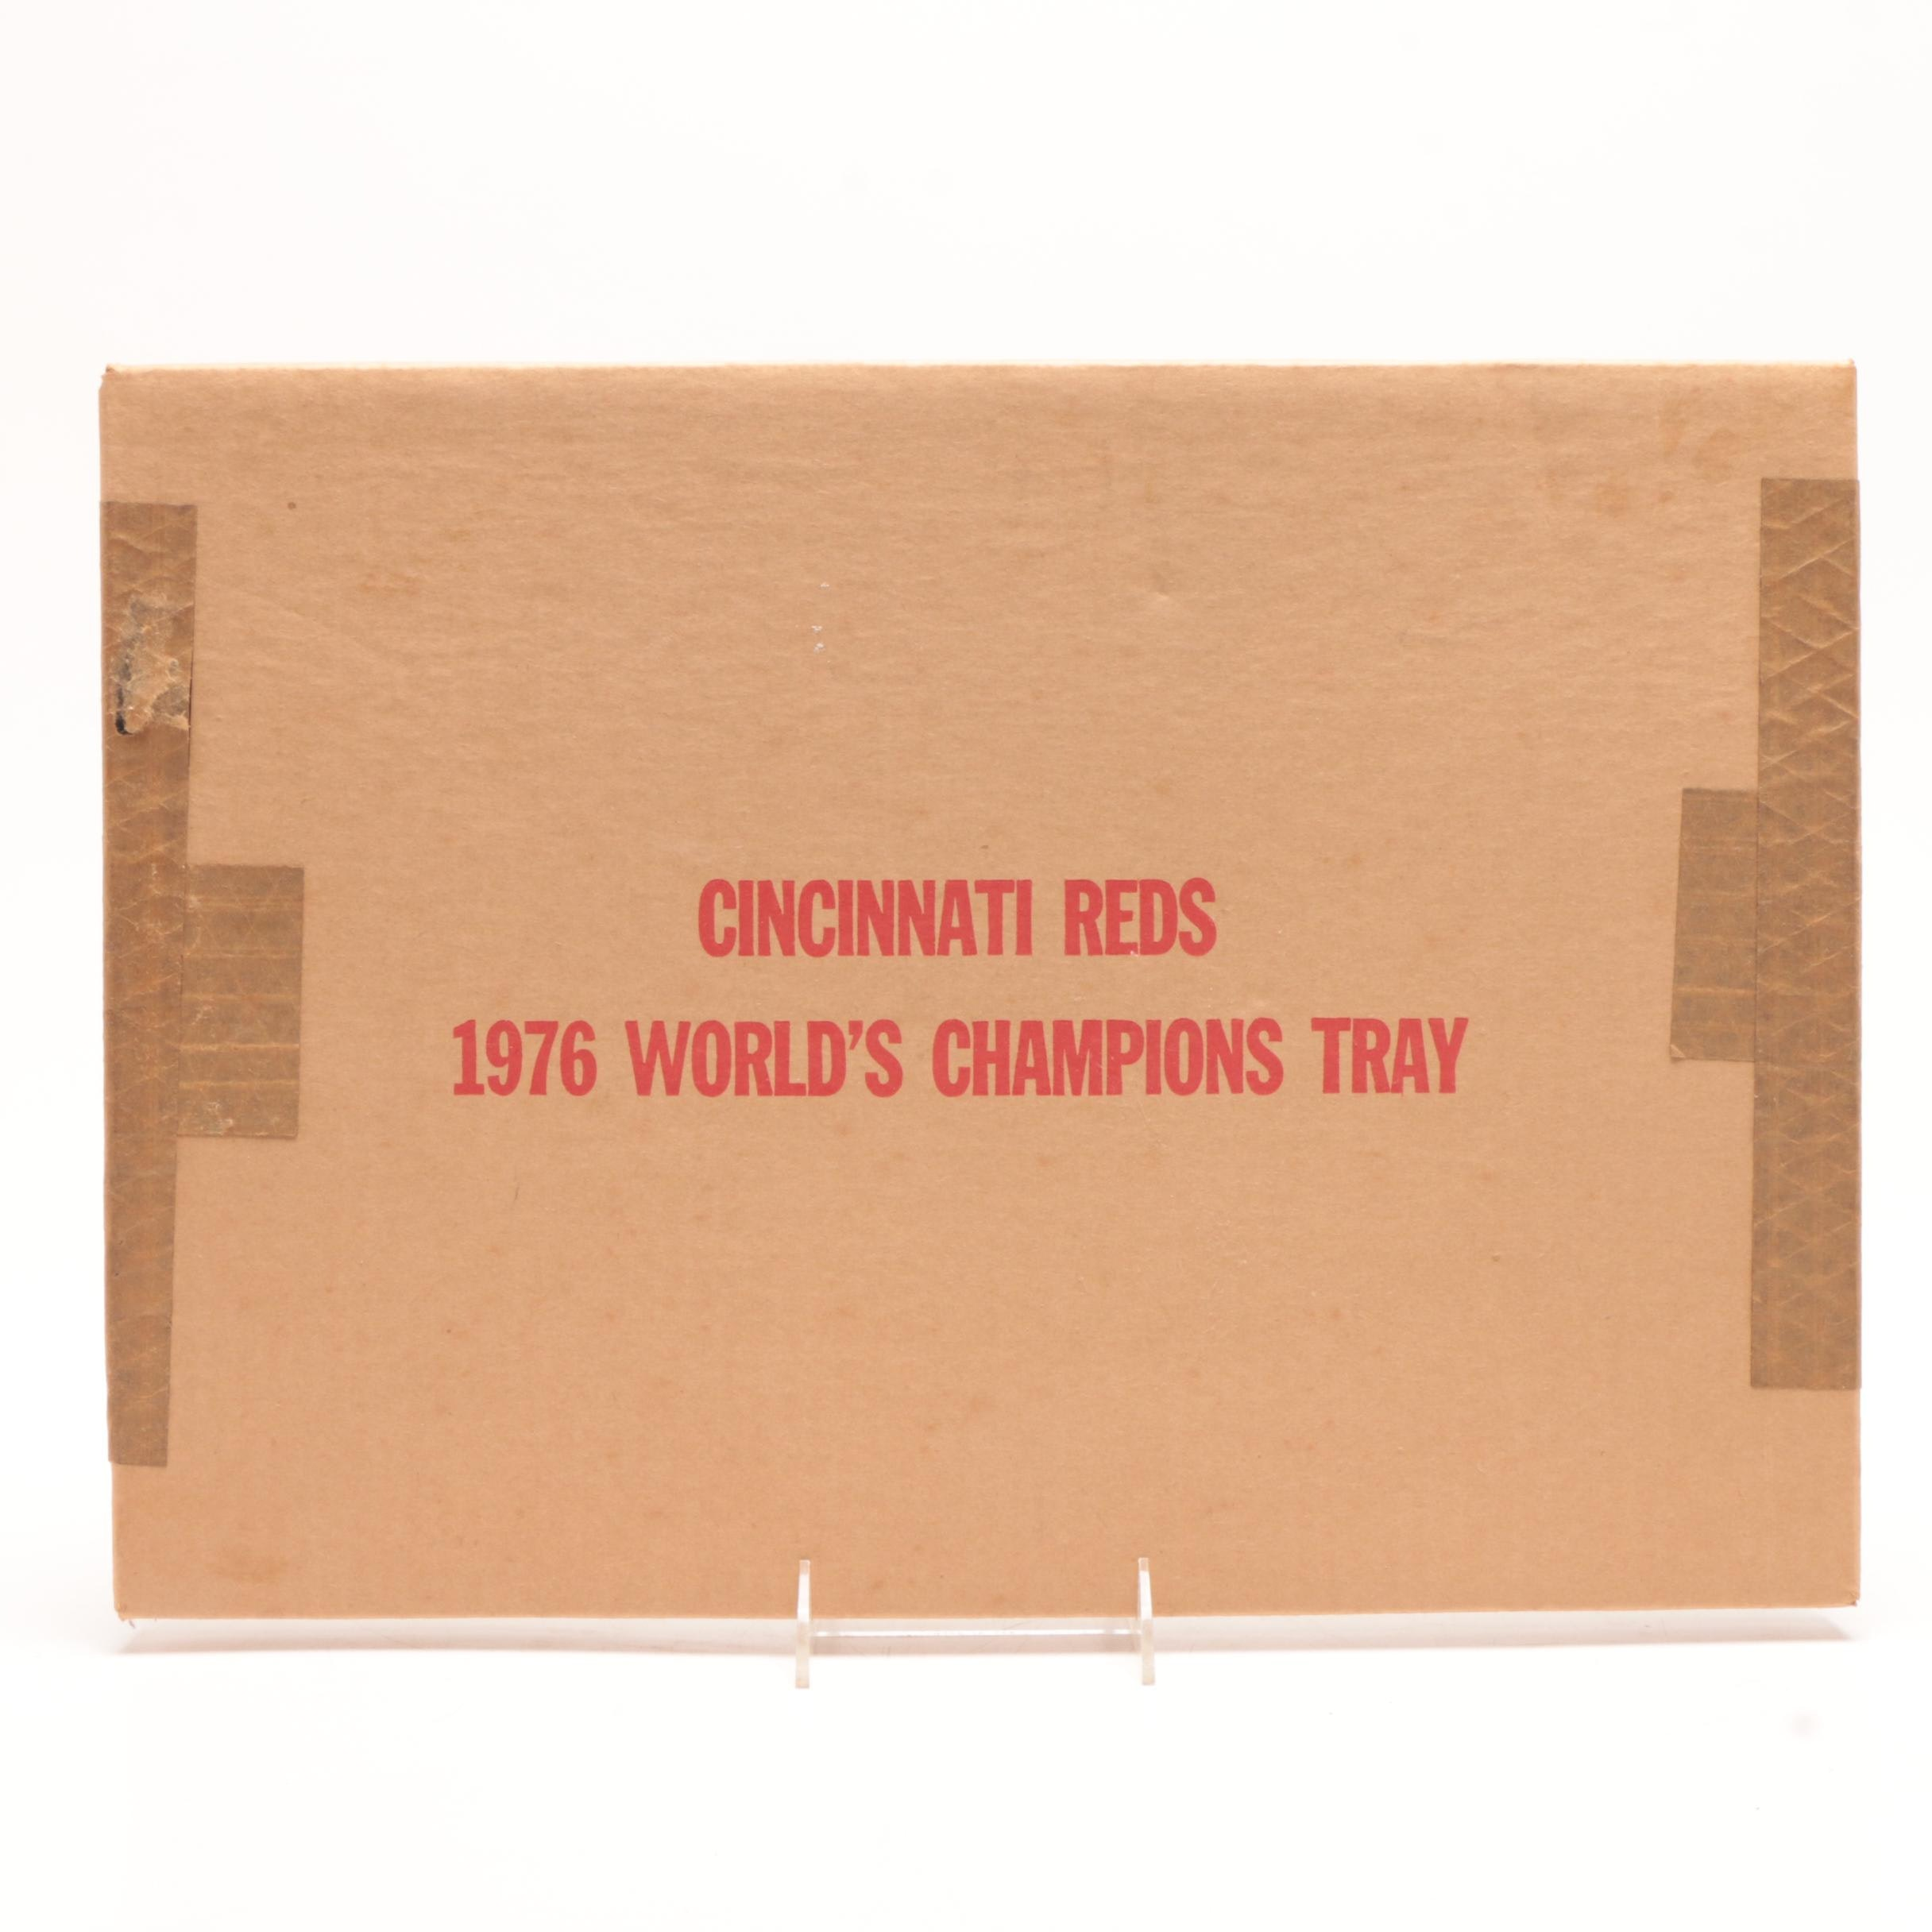 1976 Reds Tray Sealed in Box